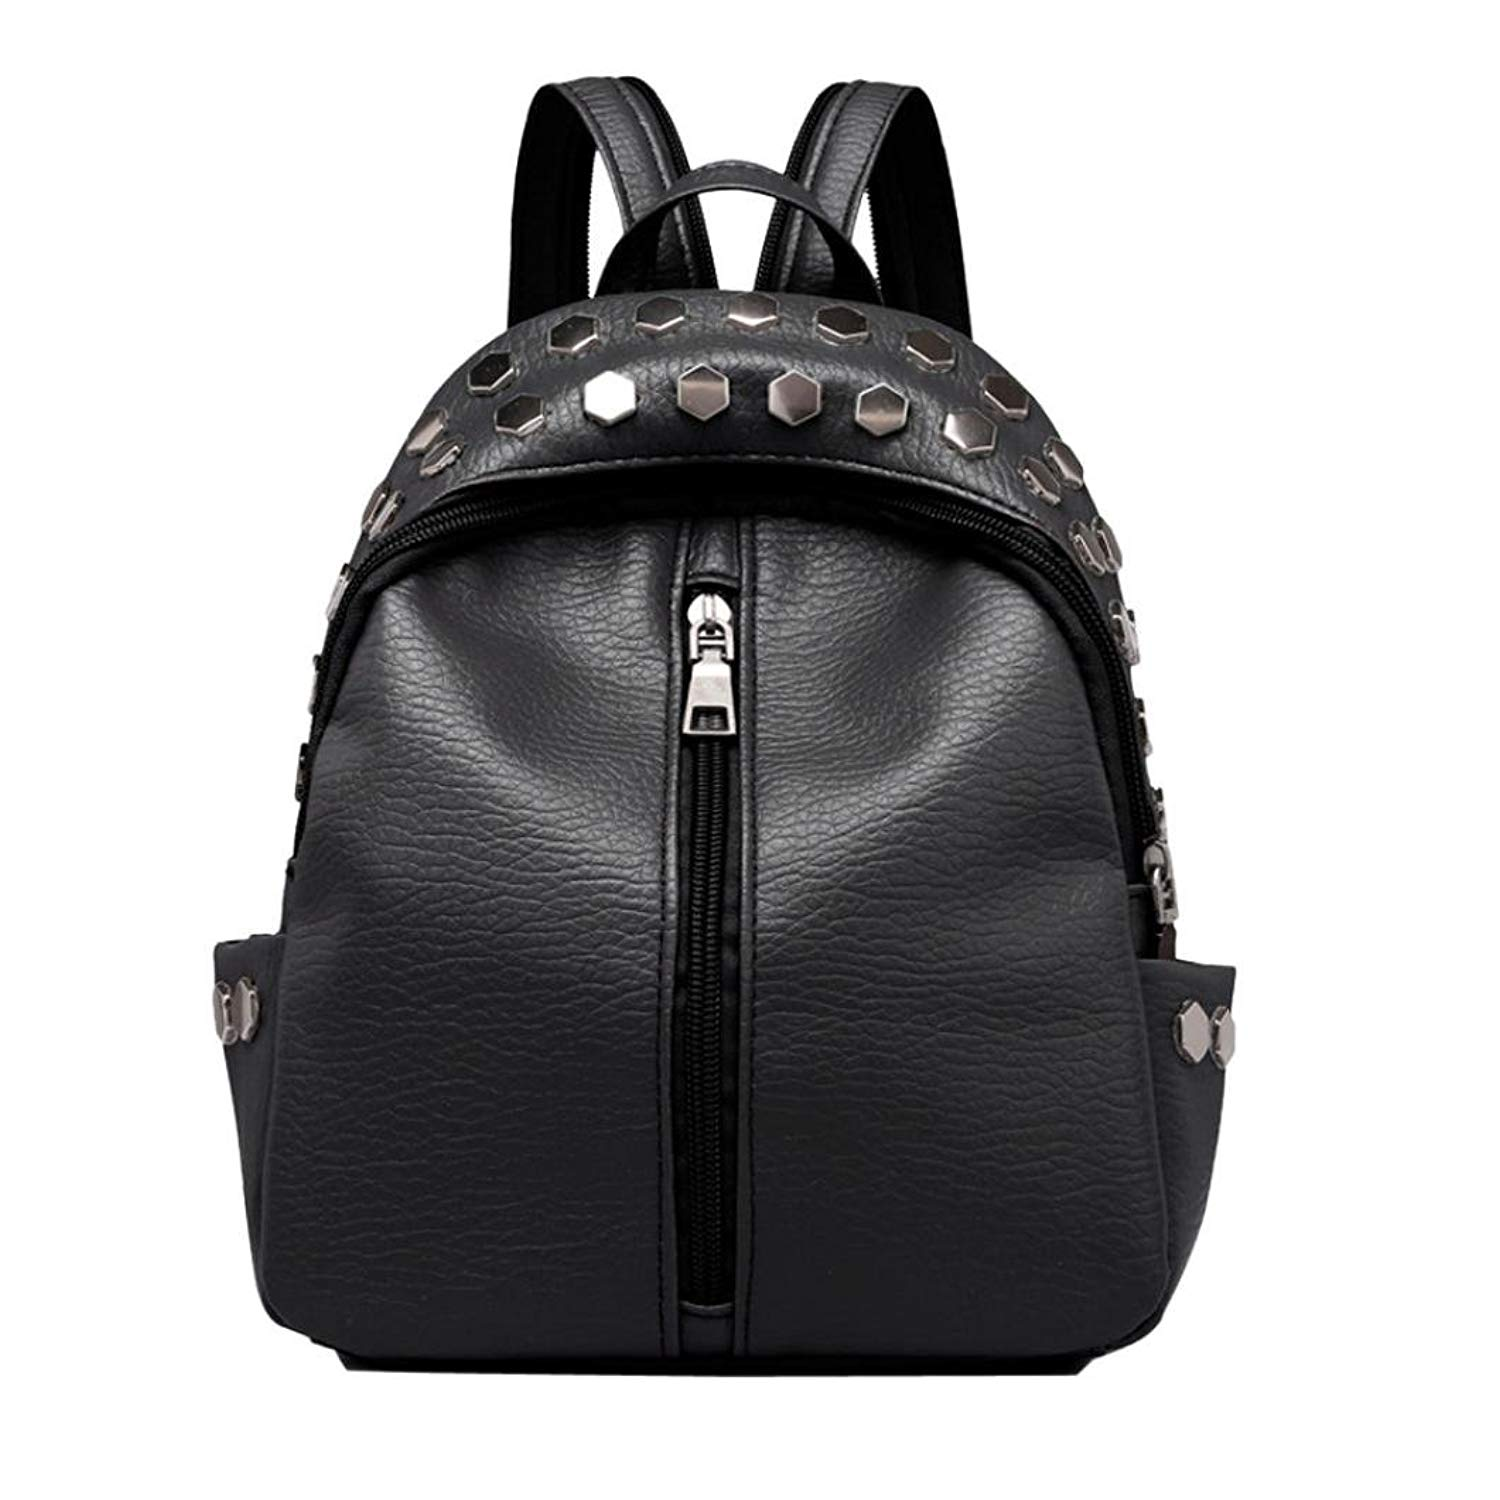 Vintage PU Leather Mini Backpack Purse Fashion Travel Rucksack for Women  Girls Rivets Decoration 983249b5852c9